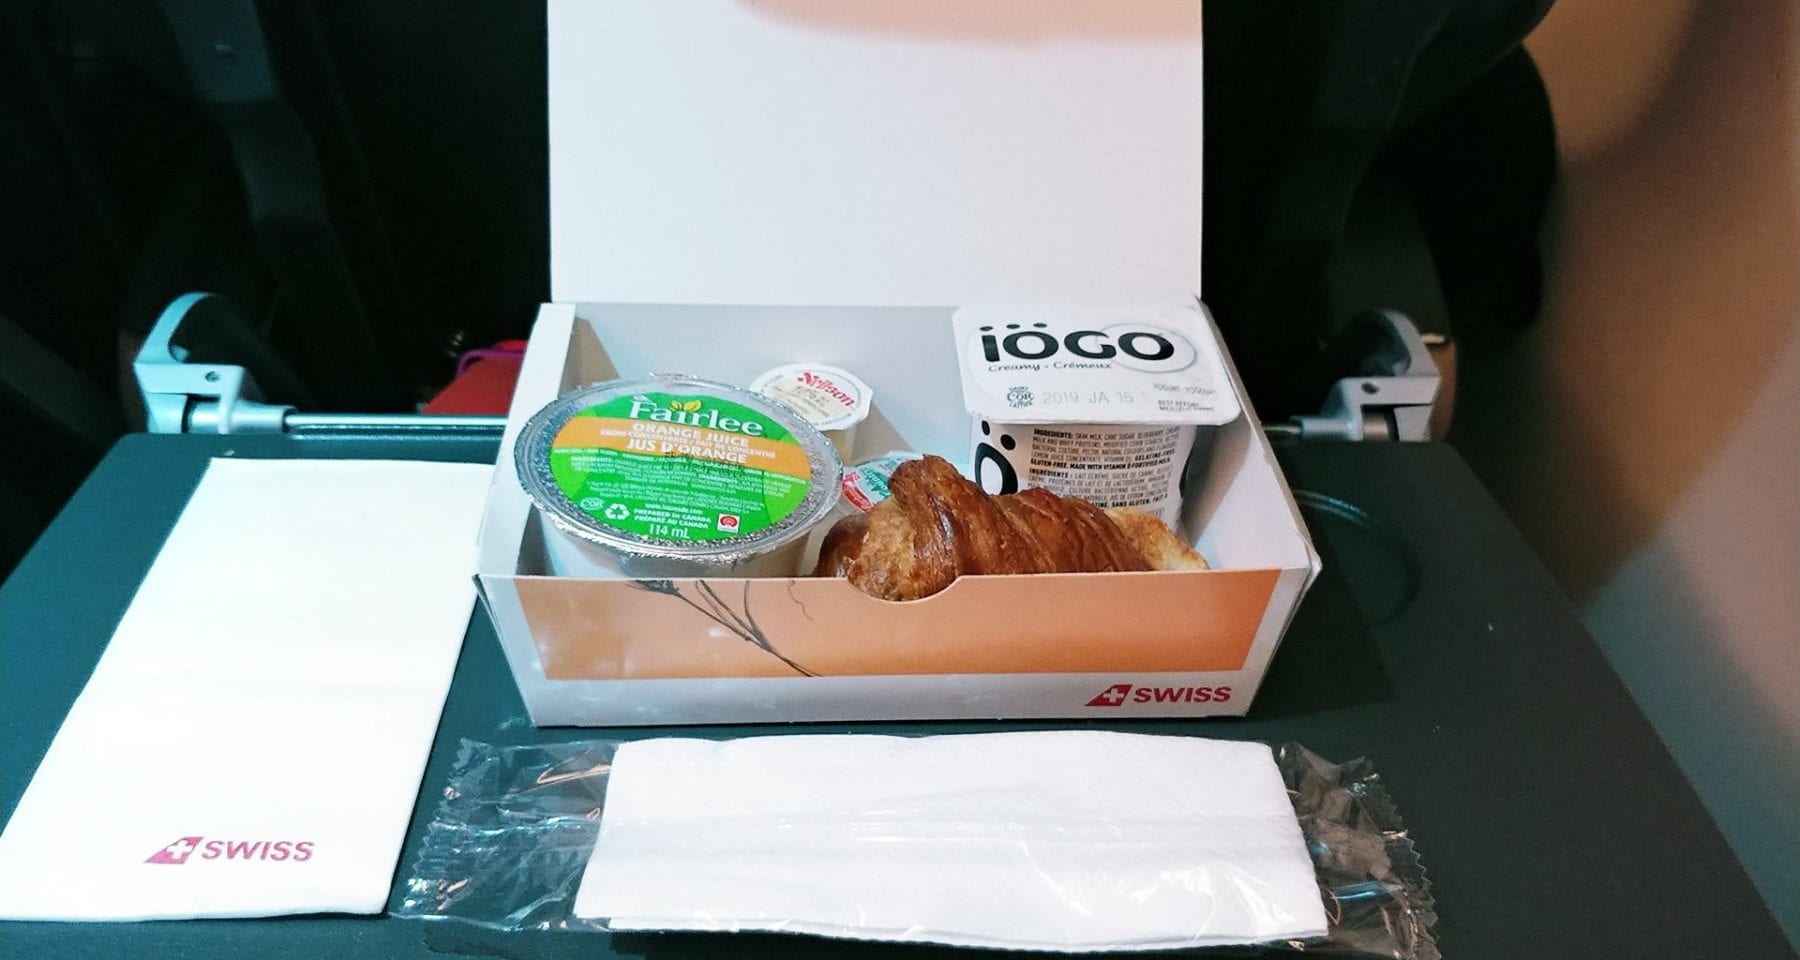 swiss air breakfast box